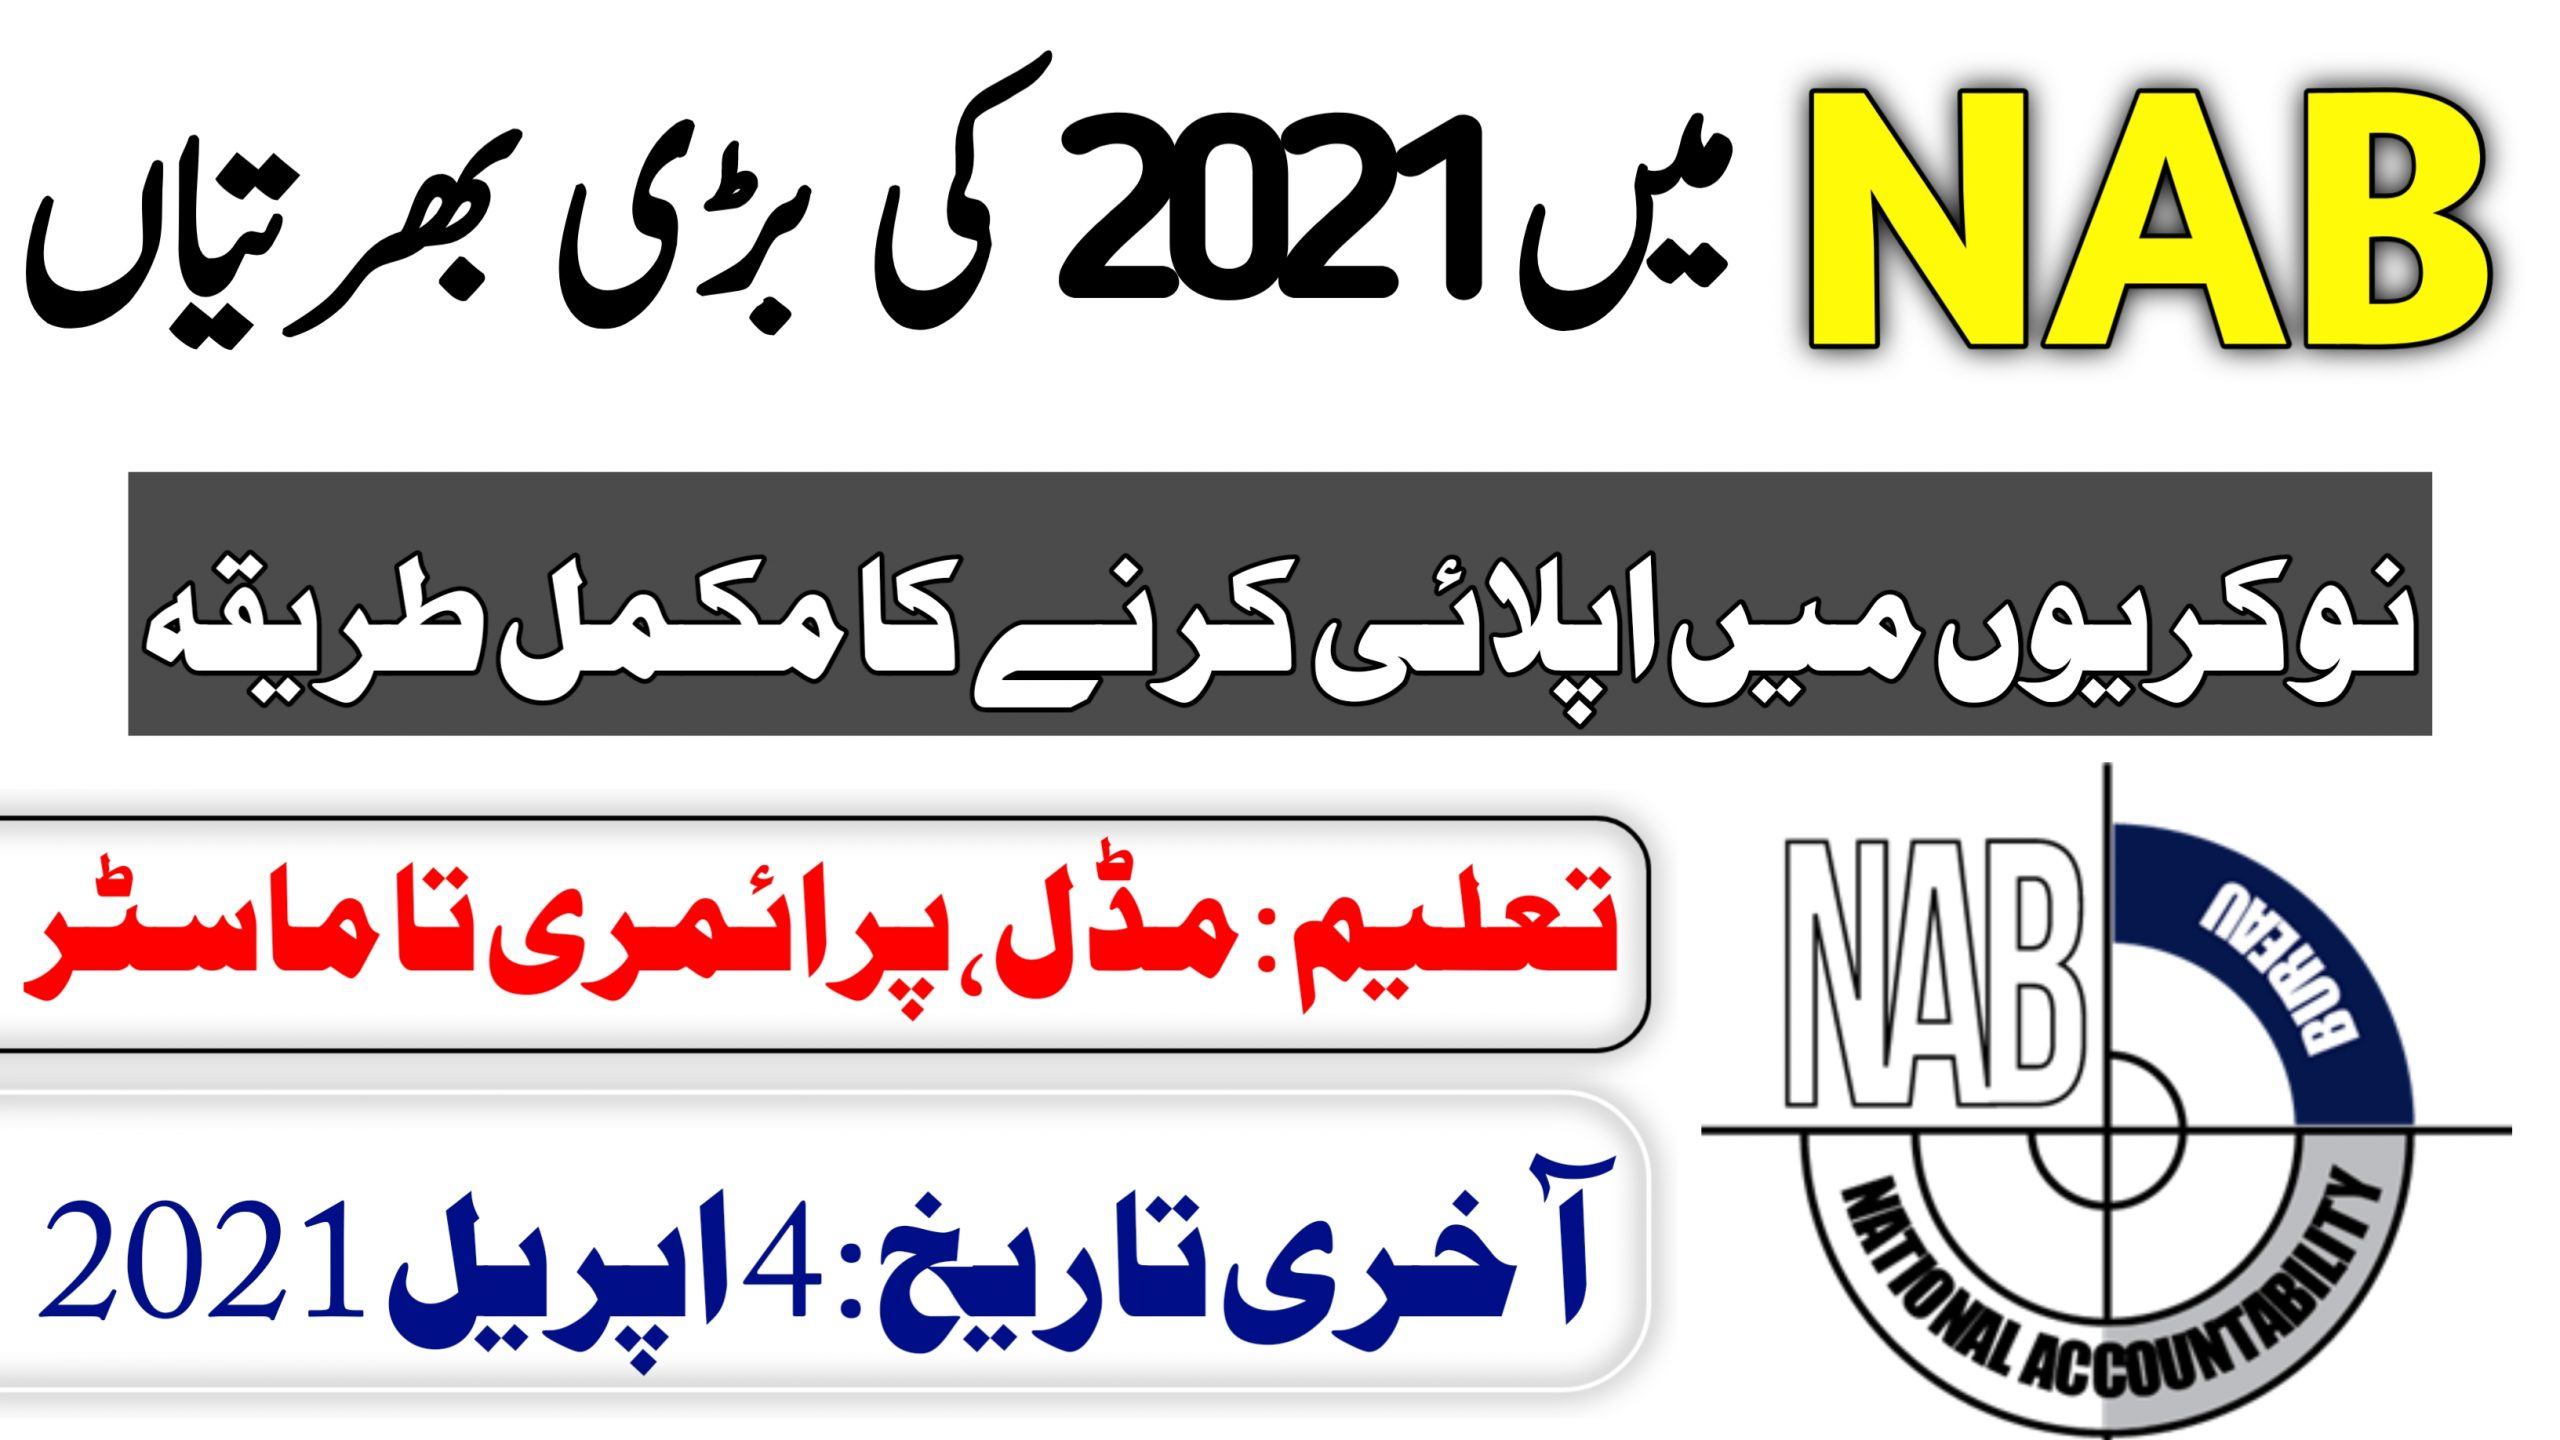 NAB Jobs 2021  National Accountability Bureau NAB Jobs 2021 NAB Jobs 2021: Today I will give you information about new vacancies NAB Jobs 2021 announced new jobs for Male and female can apply from all over Pakistan. NAB Jobs 2021 have been announced through the advertisement and applications from suitable persons are invited on the prescribed application form. In these, govt jobs in Punjab 2021, the eligible Male/Female candidates from across the country can apply through the procedure defined by the organization and can get these NAB Jobs 2021 after the complete recruitment process. Newspaper: Jung Latest Update 21 March 2021 Last Date: 04 April 2021 Department Name: National Accountability Bureau (NAB) No Of Posts Multiple Vacancies Job Location: Pakistan Education Primary, Middle, Matric, Intermediate, Bachelor Details of NAB Jobs 2021are provided below. NAB Islamabad Jobs 2021 Advertisement is looking to hire staff from All Over Pakistan. NAB Islamabad Announced career opportunities for Assistant (BPS-15), Steno Typist (BPS-14), Data Entry Operators (BPS-12), UDC Upper Division Clerk (BPS-11), Lower Division Clerk LDC (BPS-09), Driver (BPS-04), Mess Cook (BPS-01). NAB Lahore Jobs 2021: The advertisement of NAB Punjab Jobs 2021 is announced to hire Data Control Assistant (BPS-15), Assistant (BPS-15), Cashier (BPS-14), Steno Typist (BPS-14), UDC (BPS-11), LDC (BPS-09), Driver (BPS-04). NAB Sindh Jobs 2021 NAB Jobs Advertisement 2021 Karachi has announced challenging career opportunities on a temporary basis likely to continue for Data Control Assistant (BPS-15), Steno Typist (BPS-14), Cashier (BPS-14), Driver (BPS-04), Naib Qasid (BPS-01). How To Apply for NAB Jobs 2021 How To Apply? Step 01:The application format is attached with the NAB Job Advertisement posted below. Step 02: Candidates can also download the application form from NAB's Official website www.nab.gov.pk. Step 03: Candidates should read the Important Notes given in the advertisement before a step f